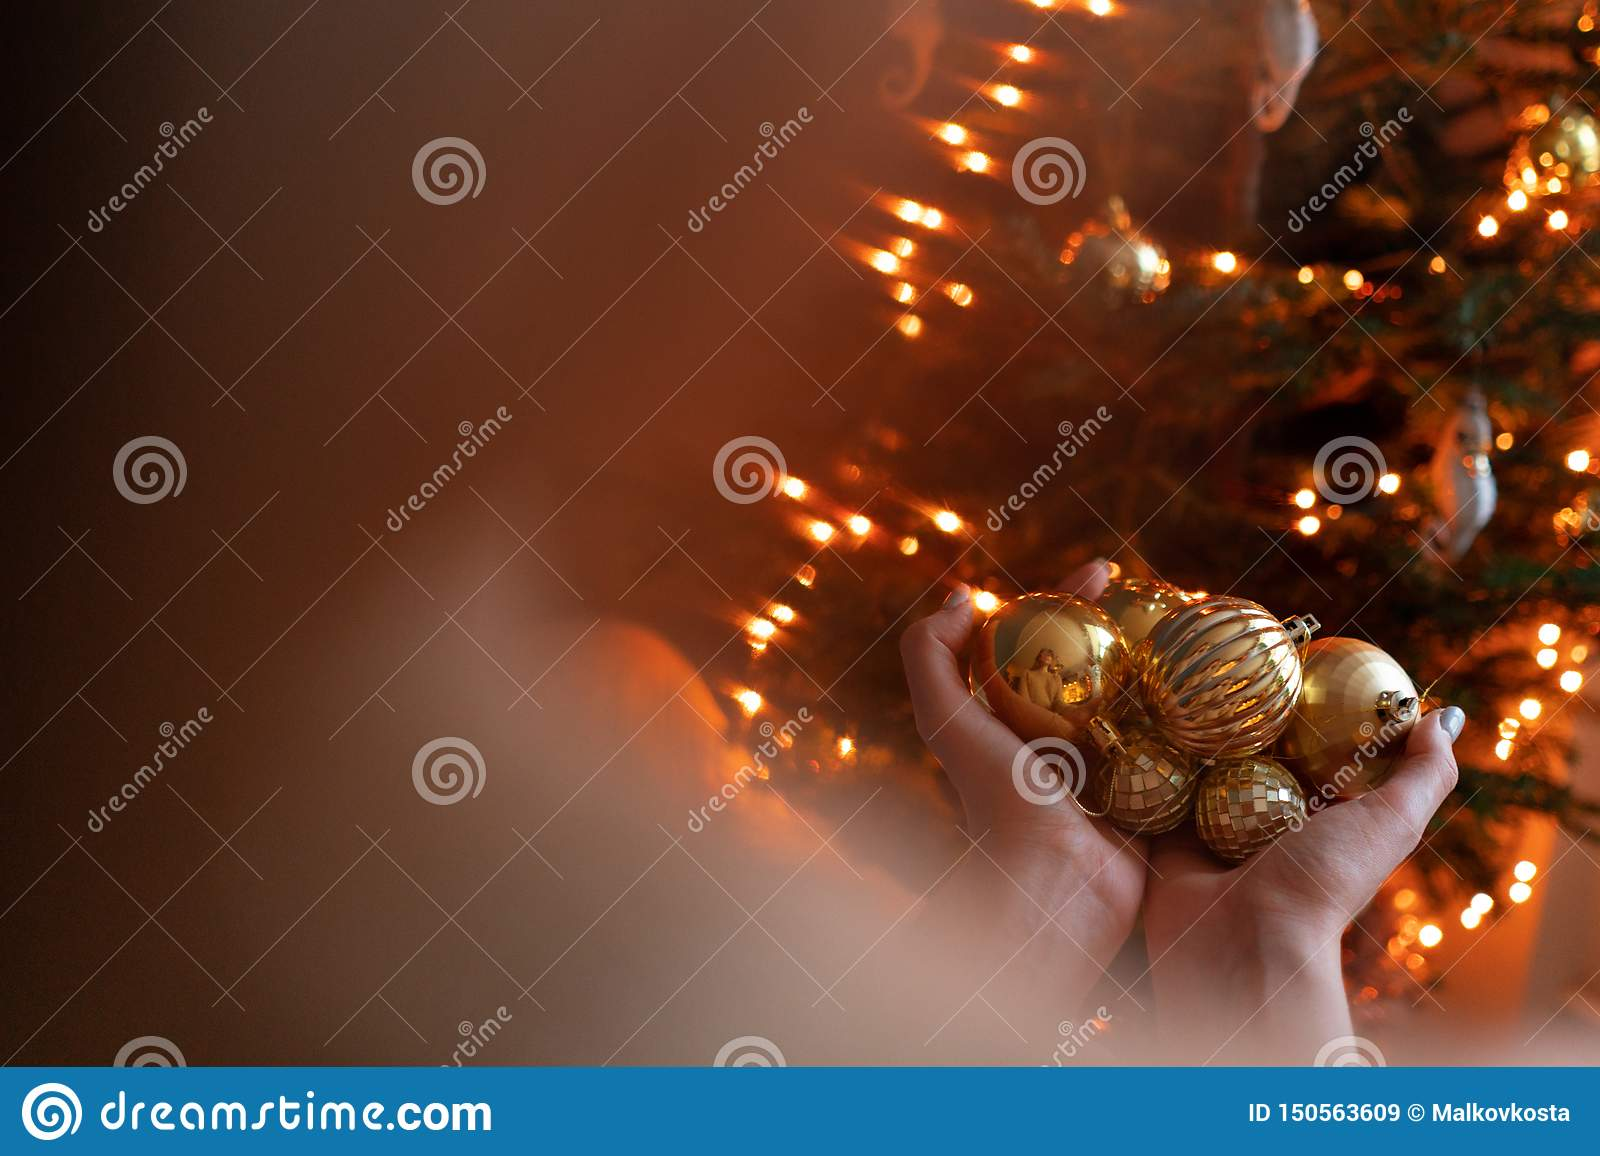 Close-up woman holds in the hands of Golden Christmas tree toys. Winter holidays in a house interior. Golden and white